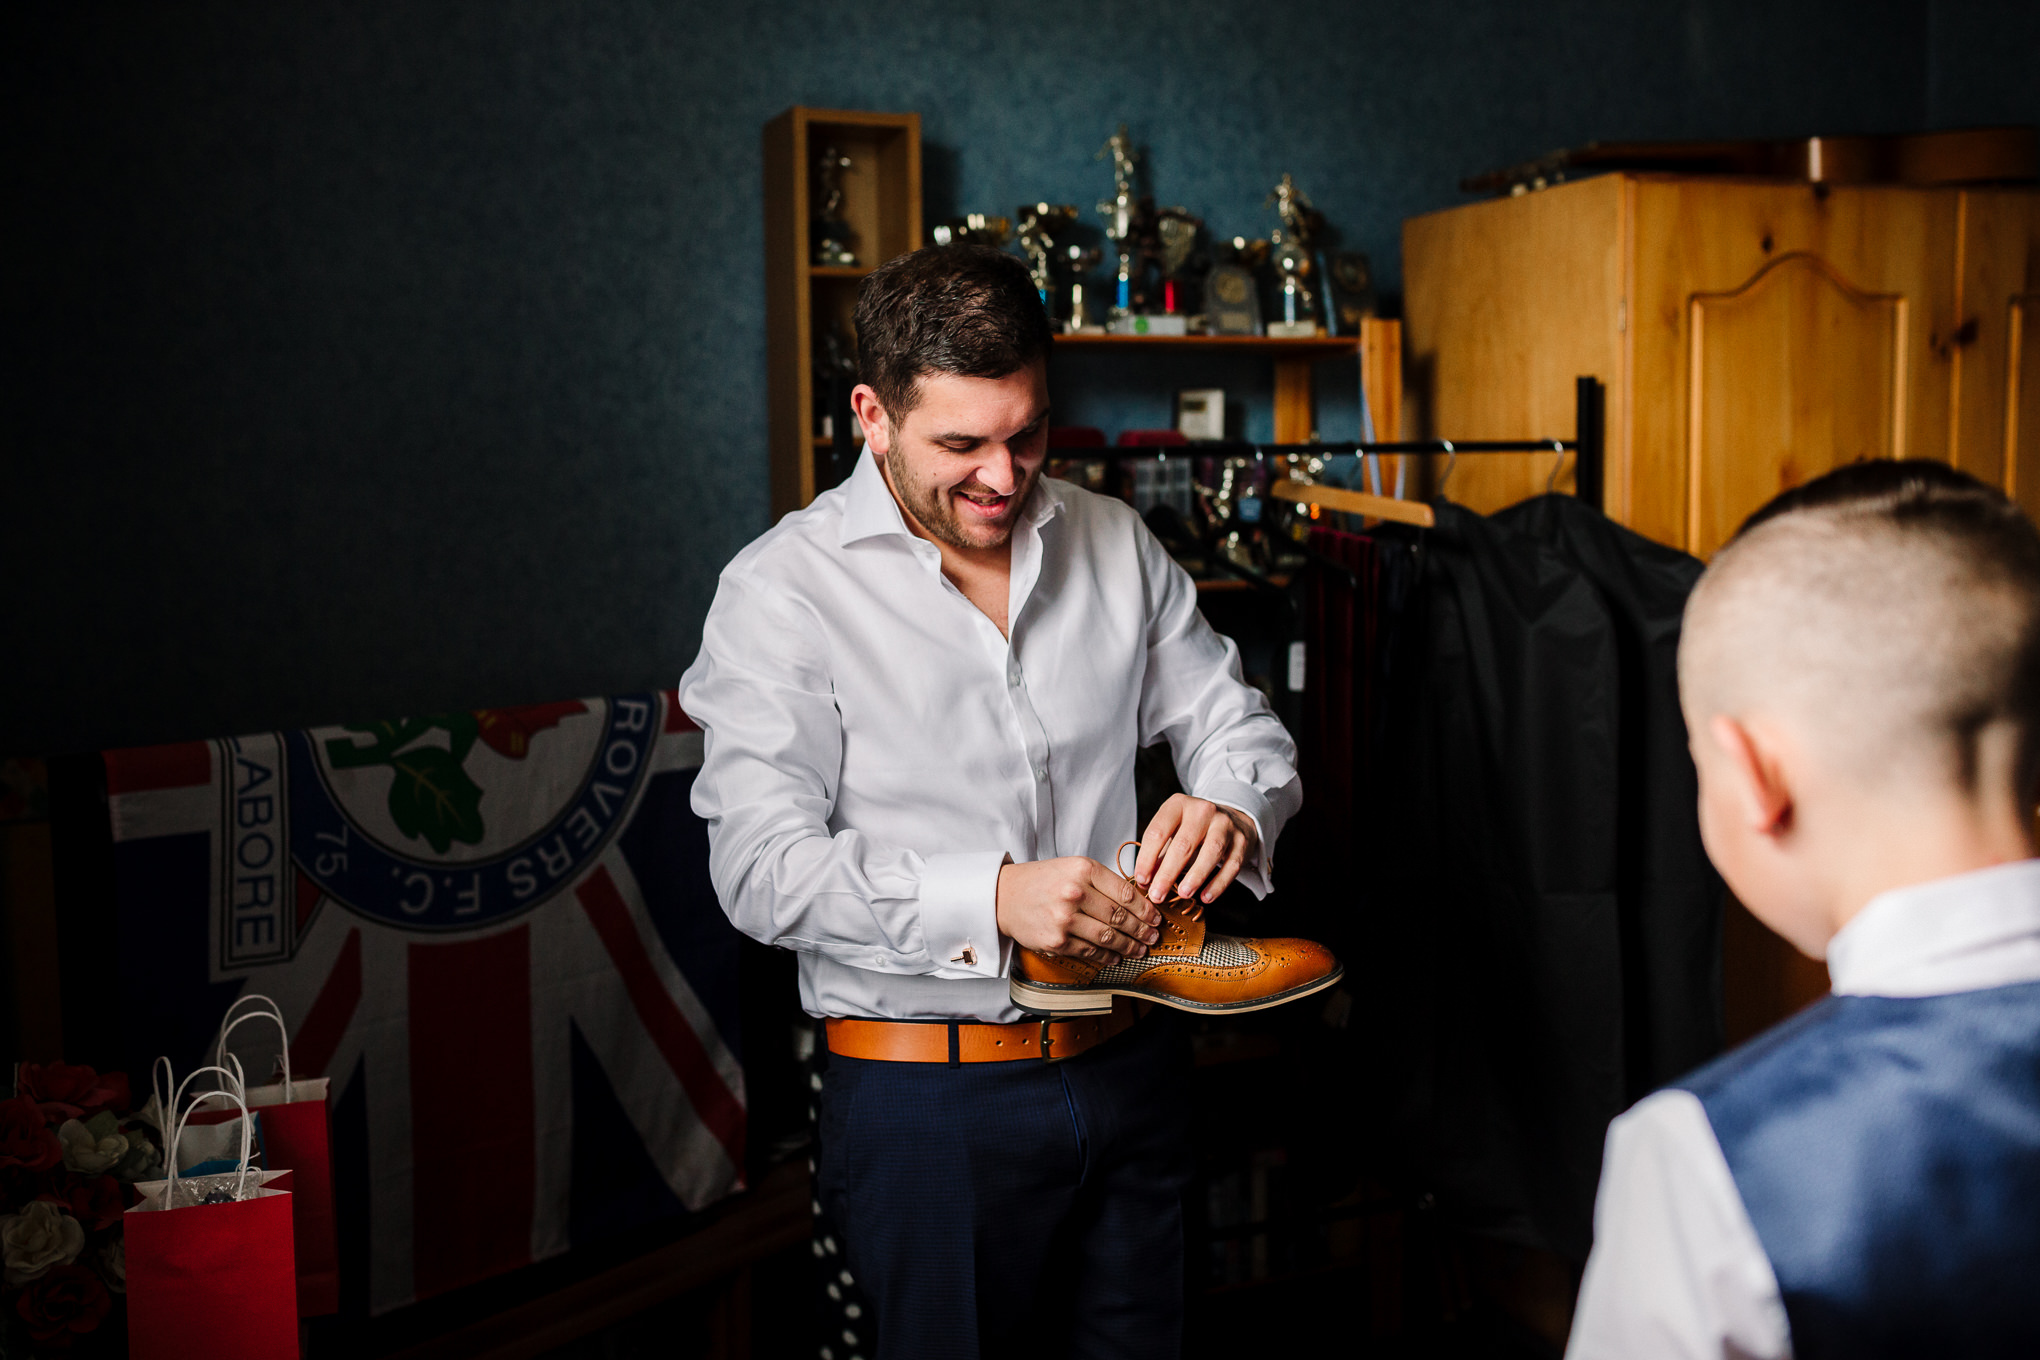 Groom getting ready for the wedding. Lancashire wedding photography.